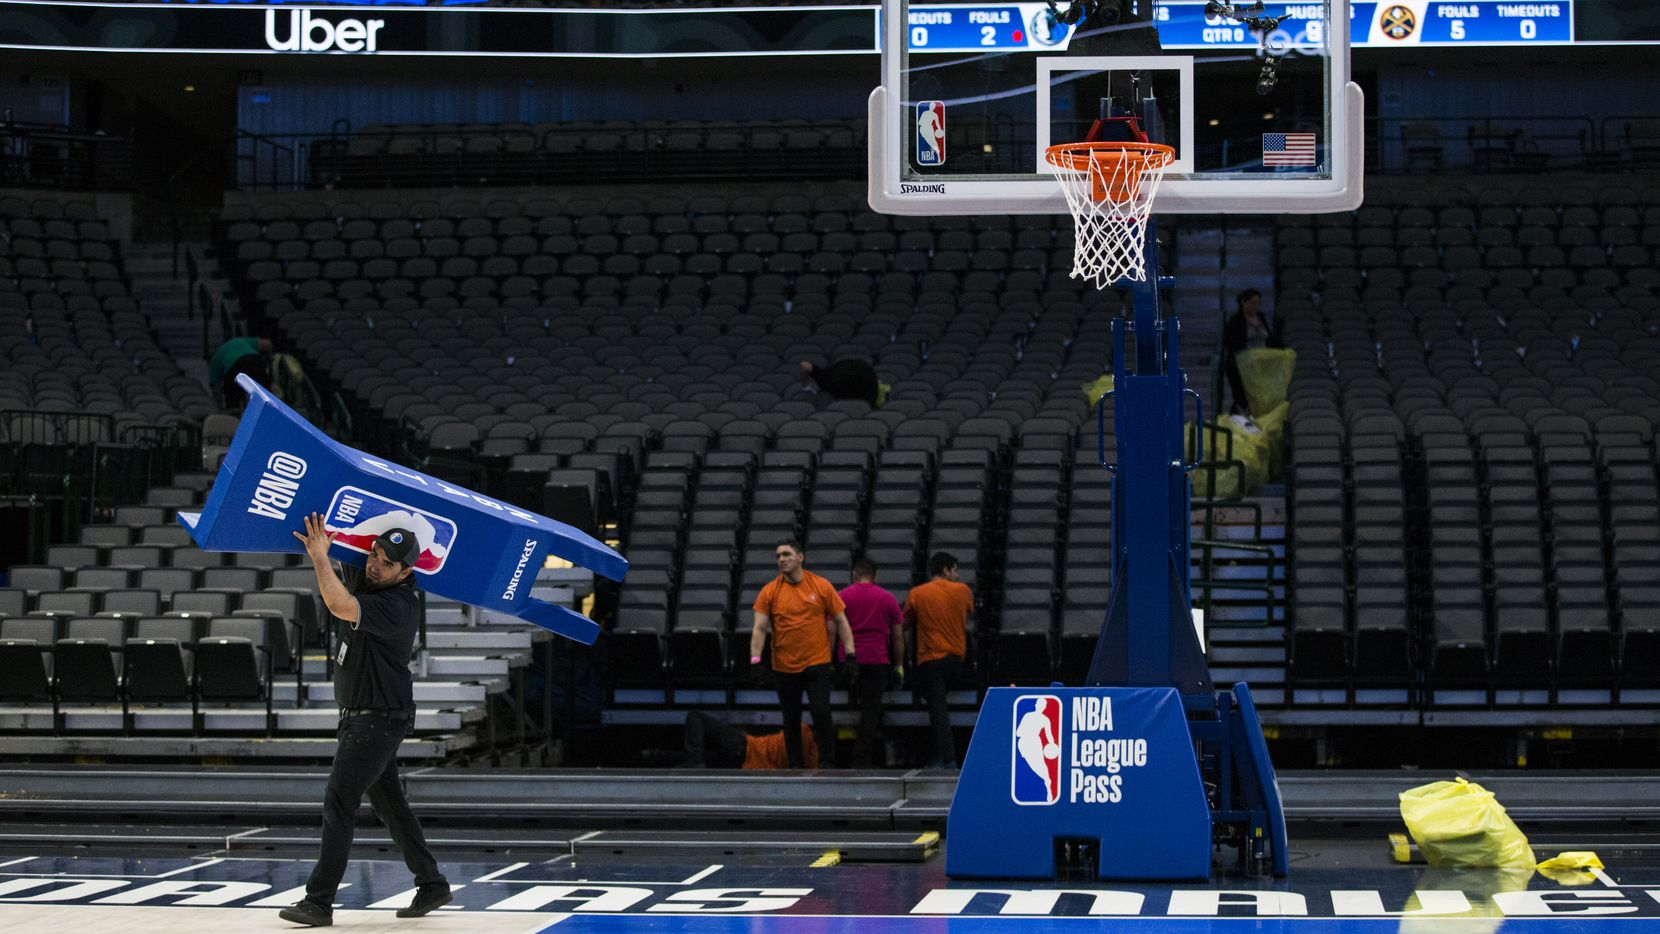 Crews break down the court after the Dallas Mavericks beat the Denver Nuggets 113-97 on Wednesday, March 11, 2020 at American Airlines Center in Dallas. During the game, the NBA suspended all games due to the spread of the new coronavirus.